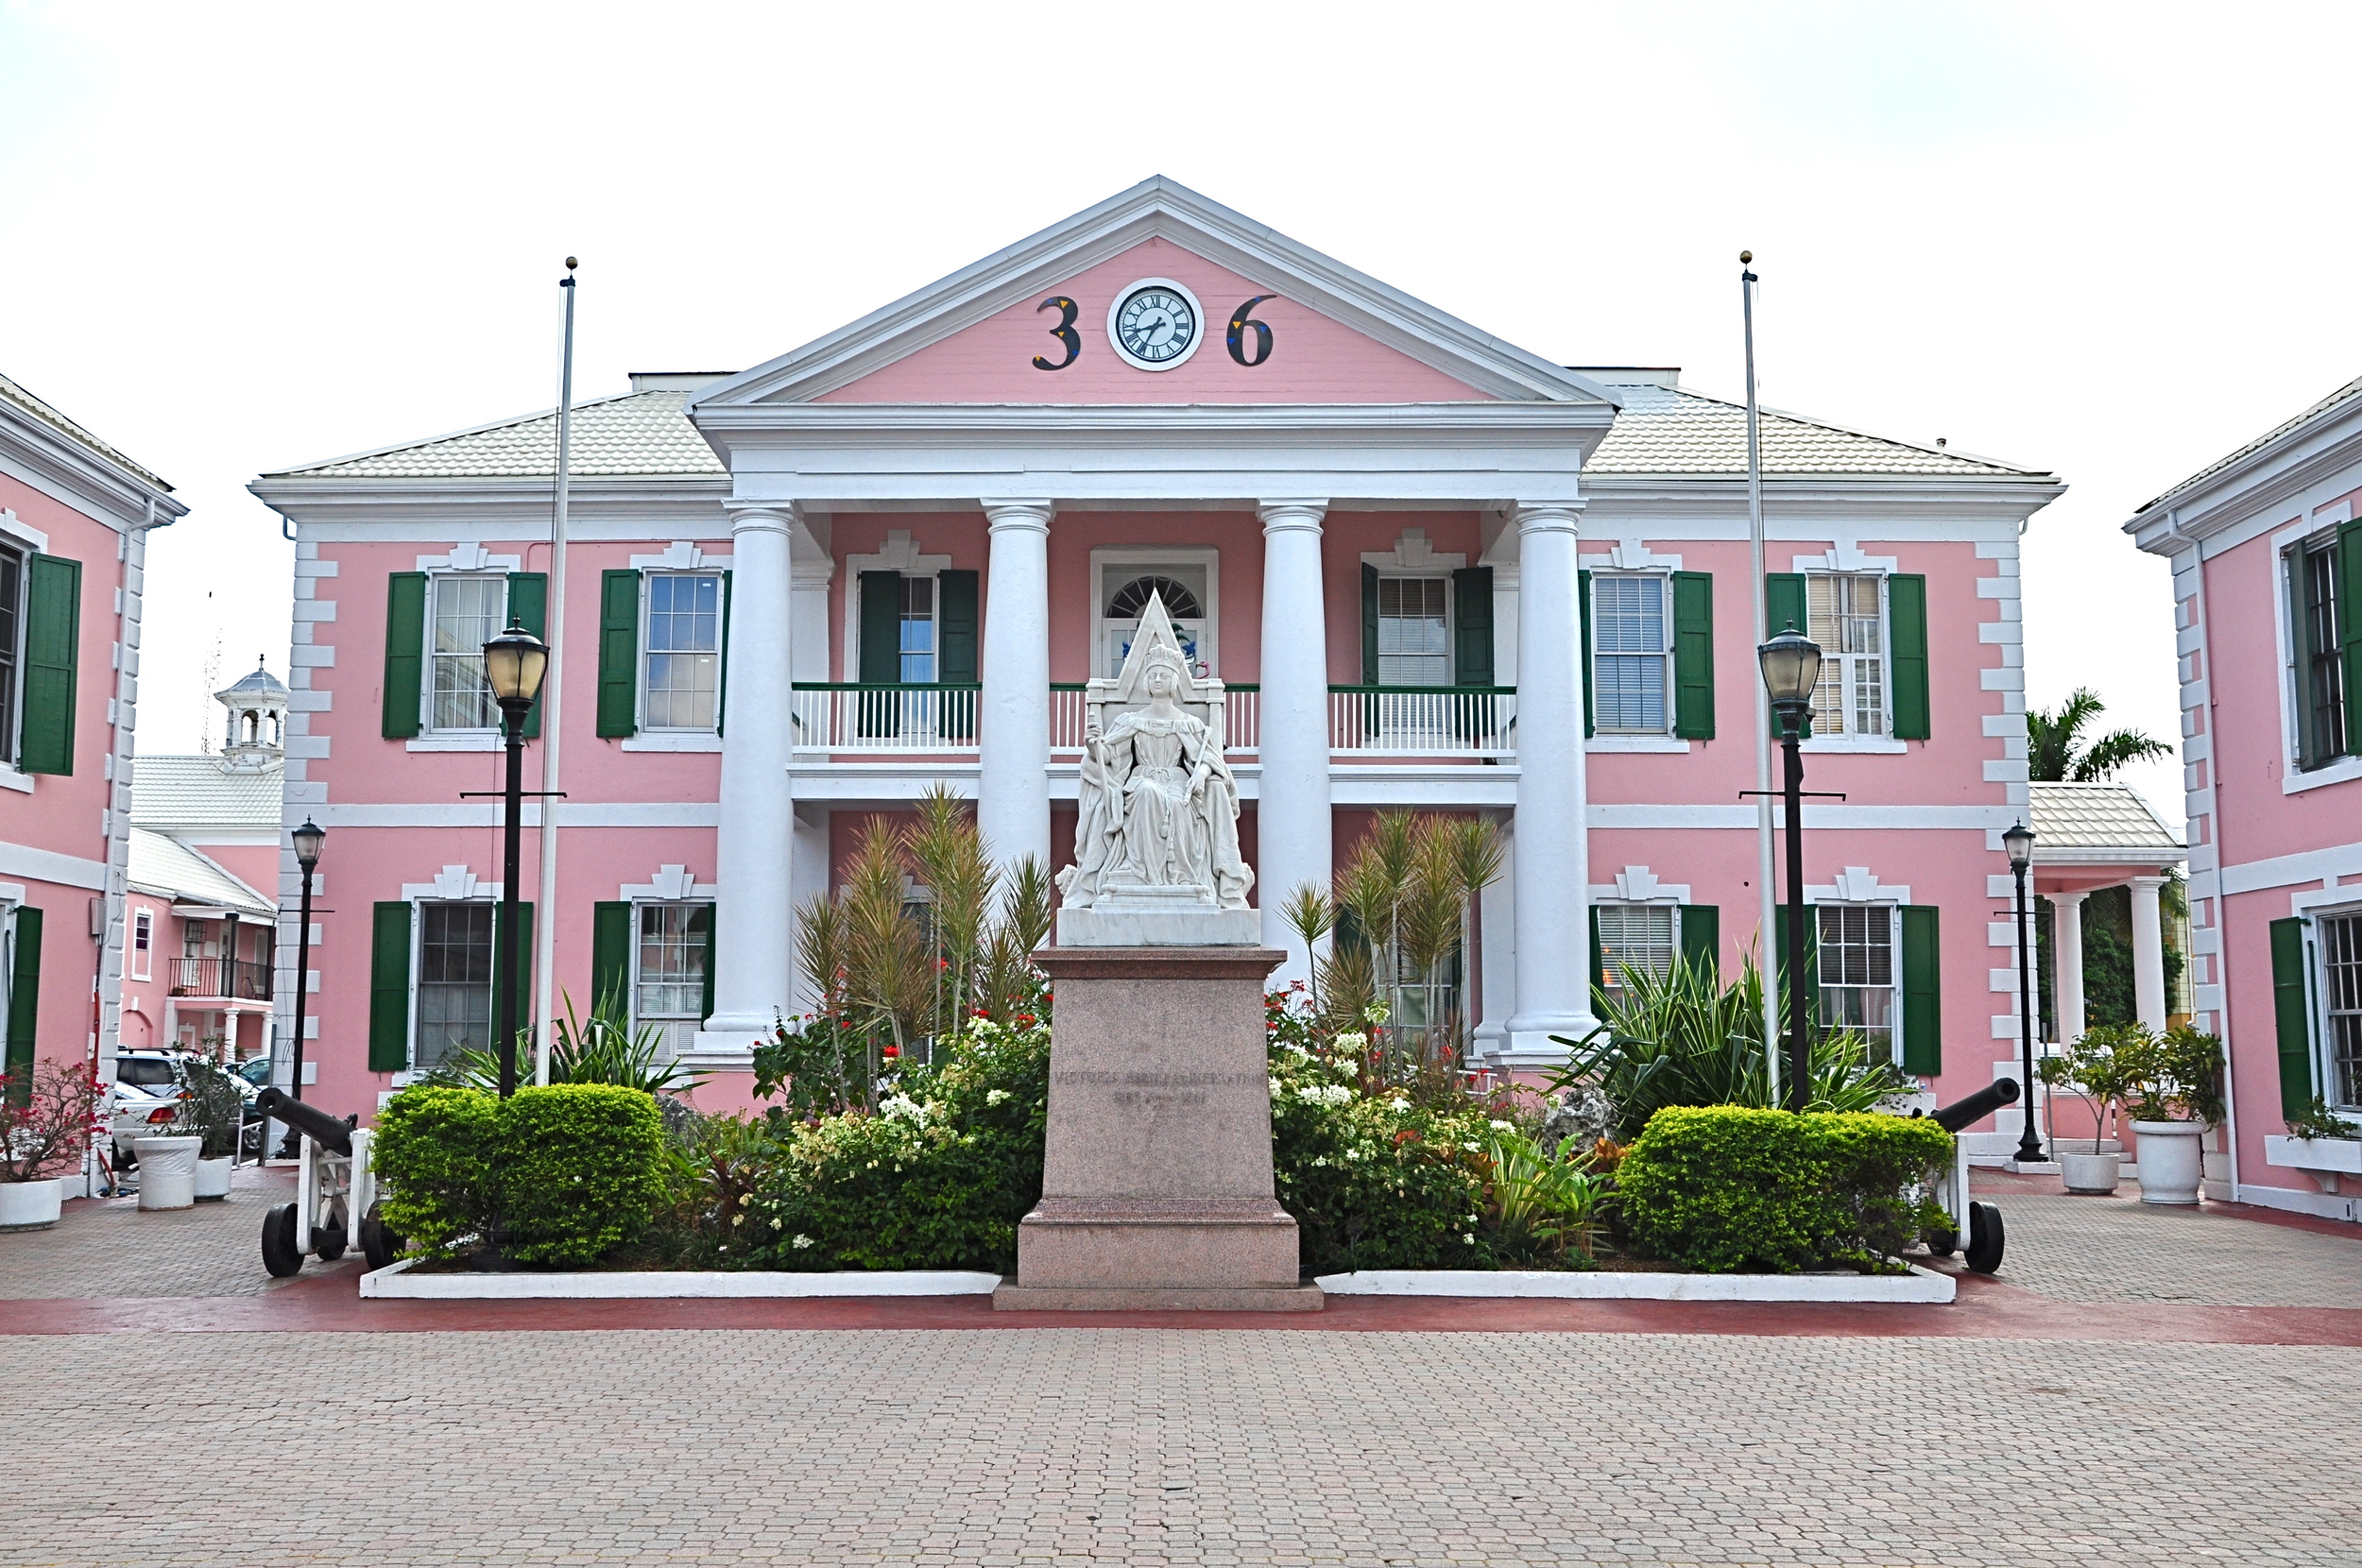 House of Parliament, Nassau, Bahamas